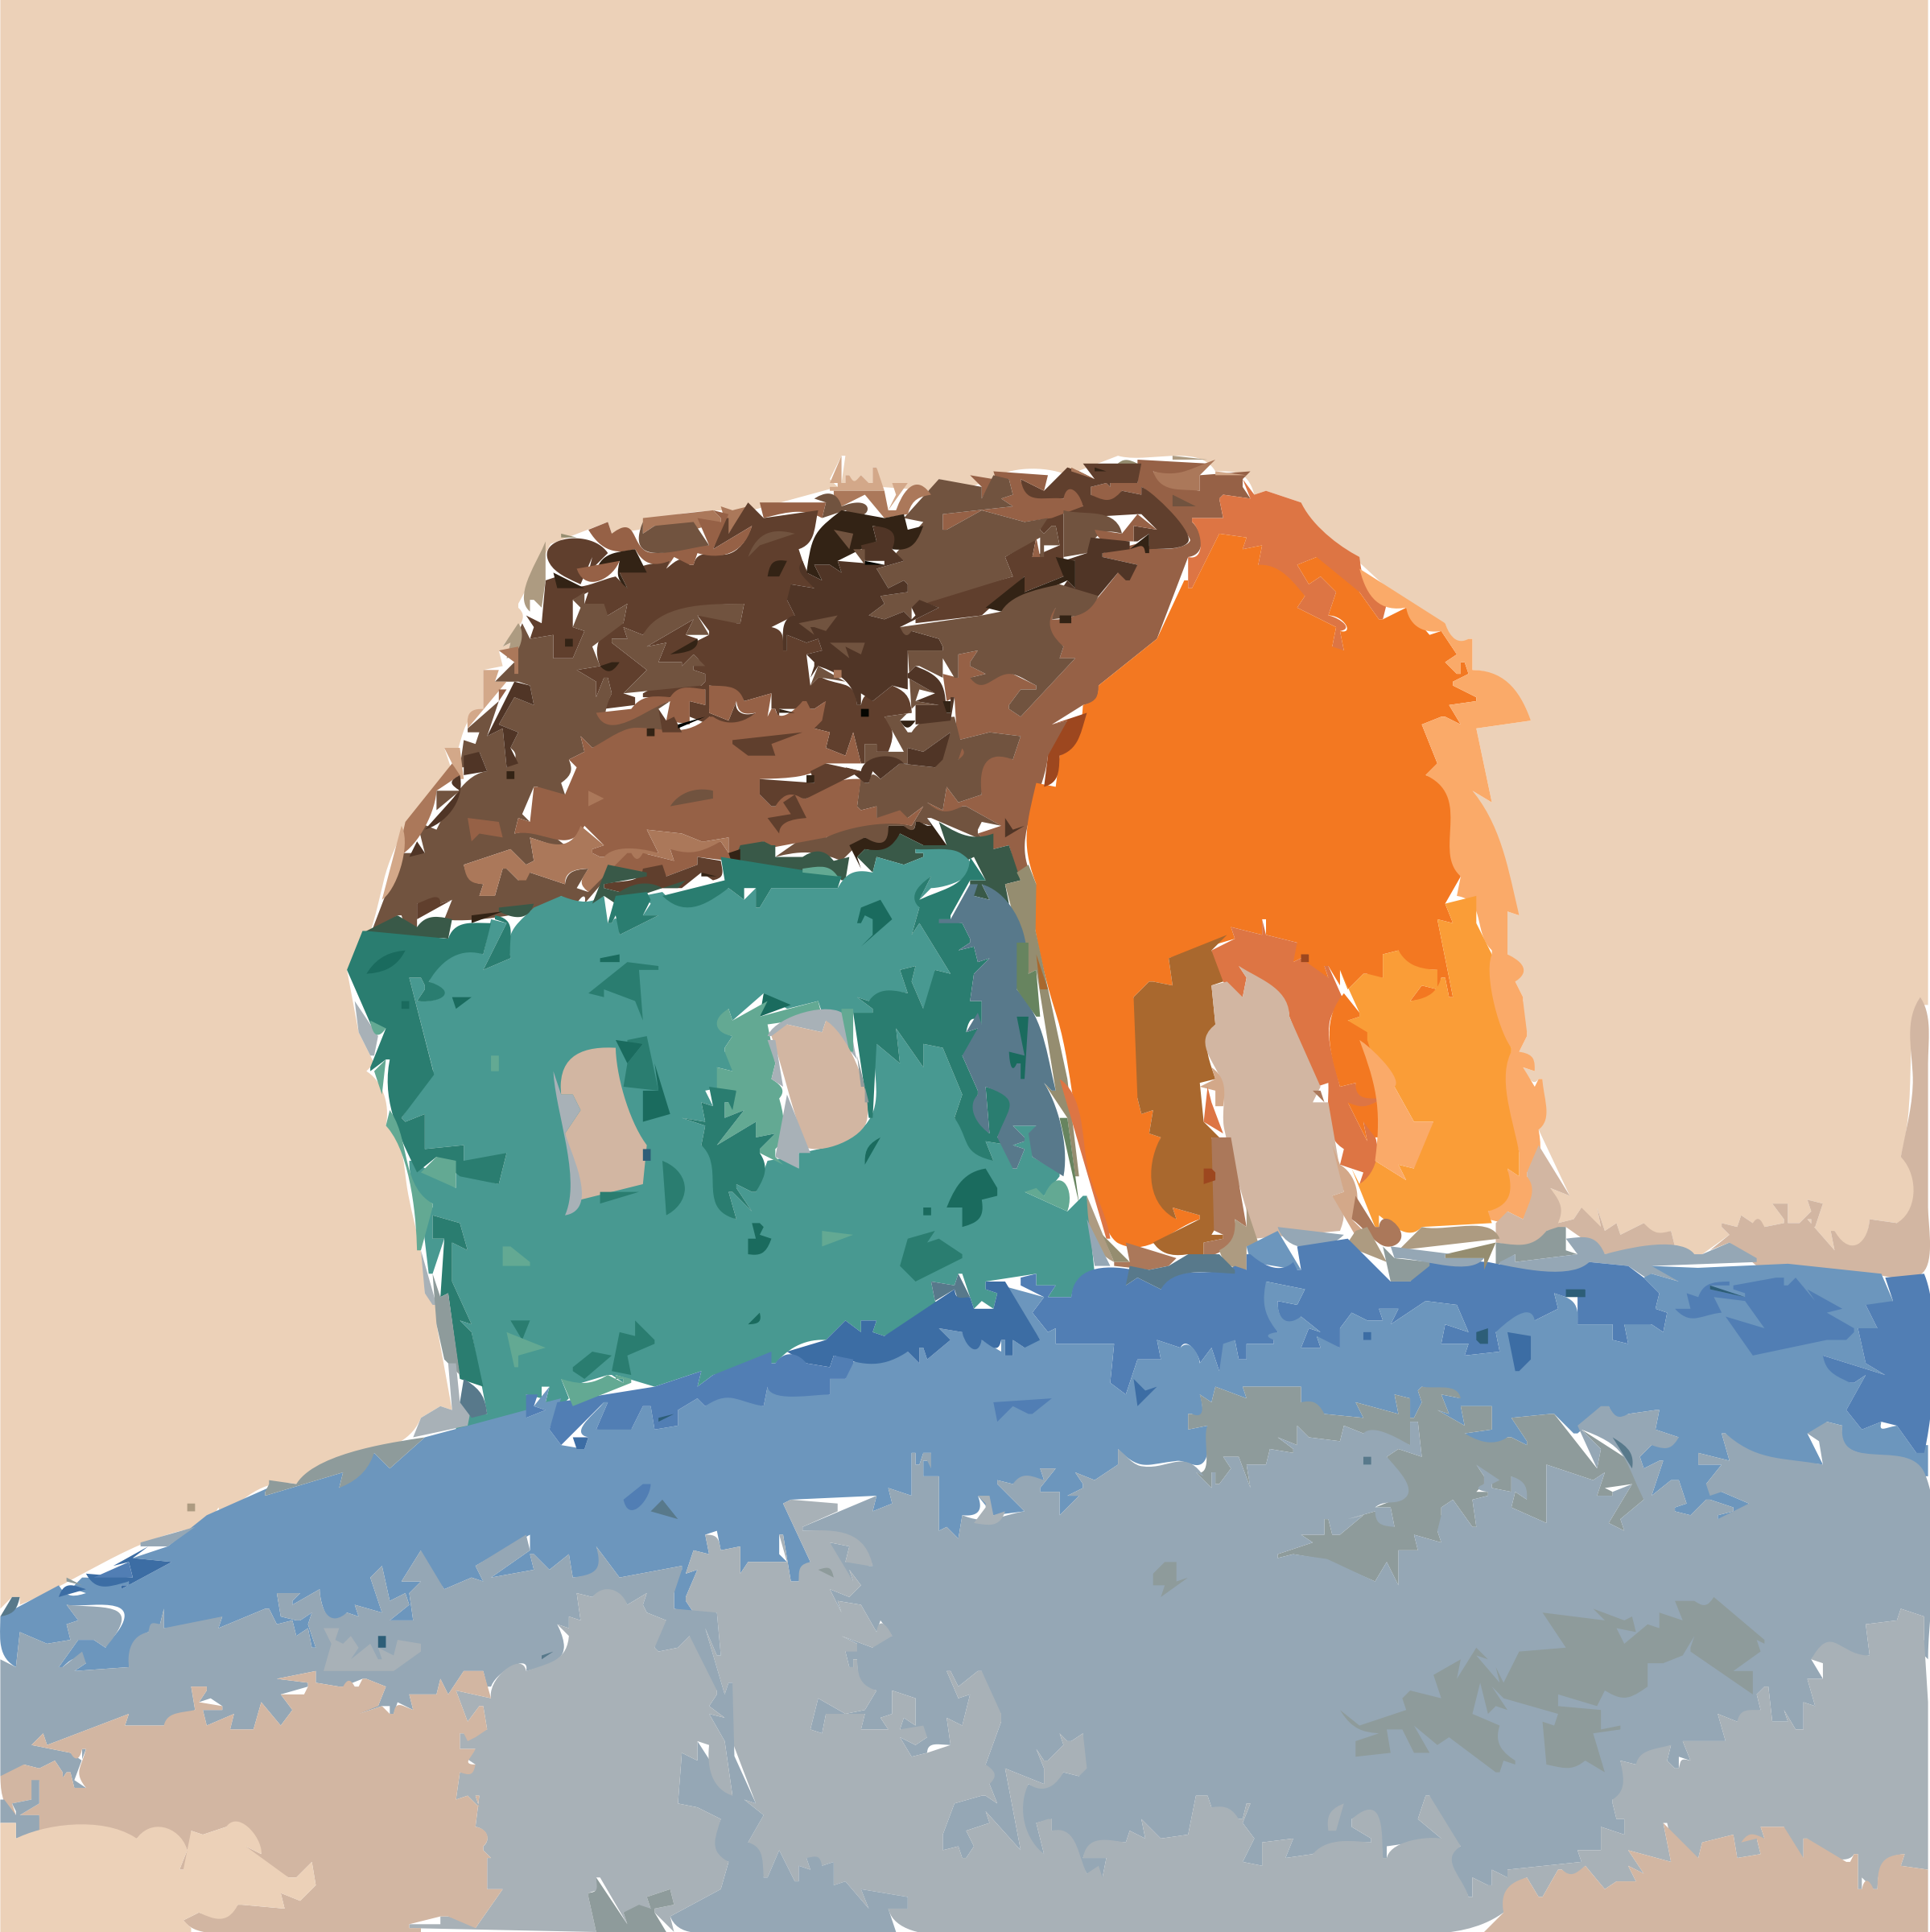 Painted Small Home (untraced) Vectorized by 5mvcfy+25epcyzr54tu0